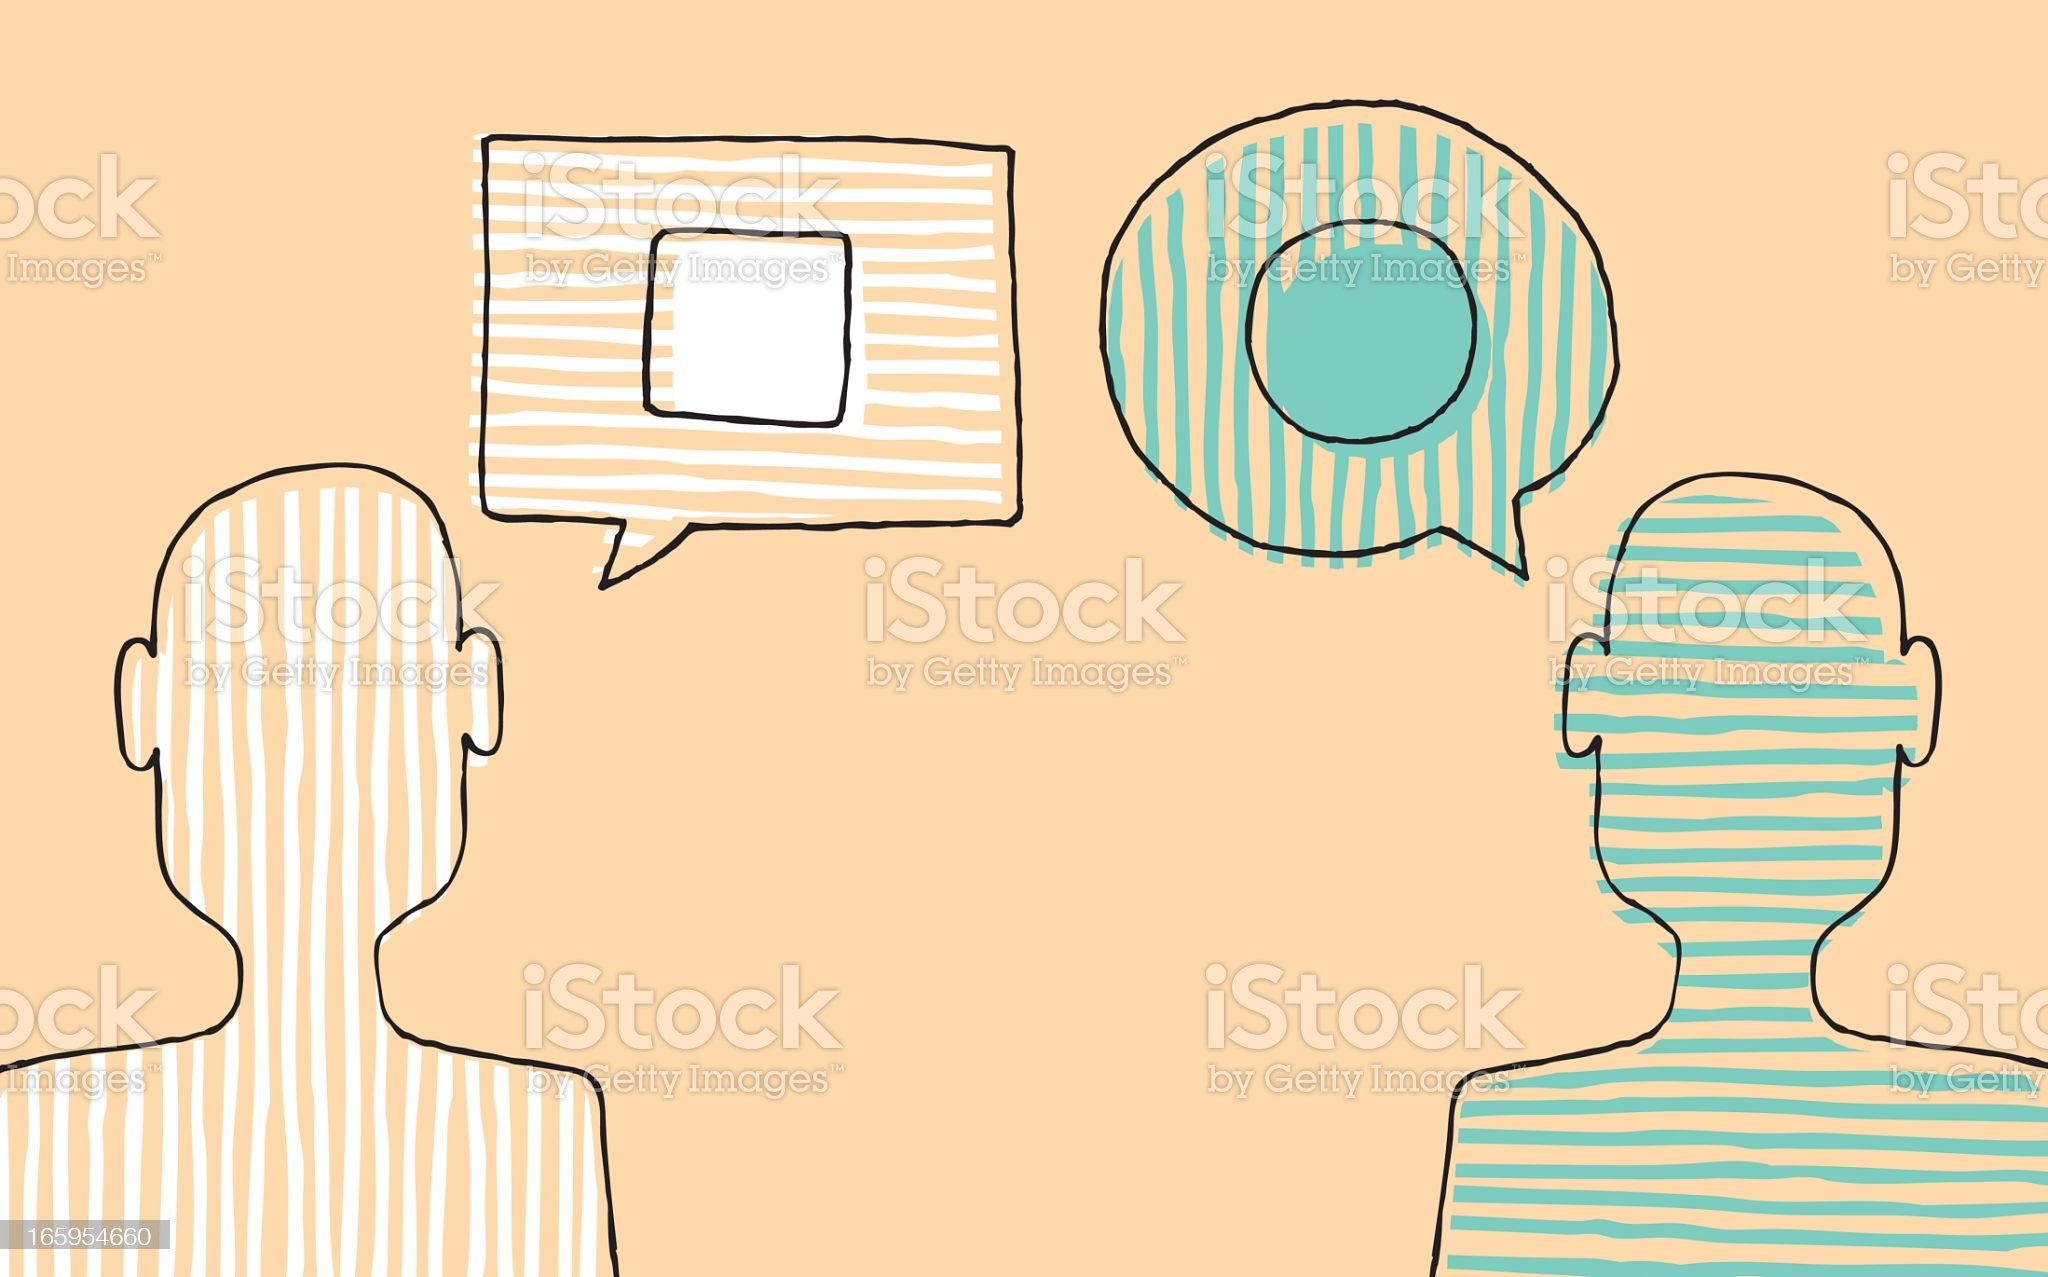 Illustration of two people with different opinions royalty-free stock vector art